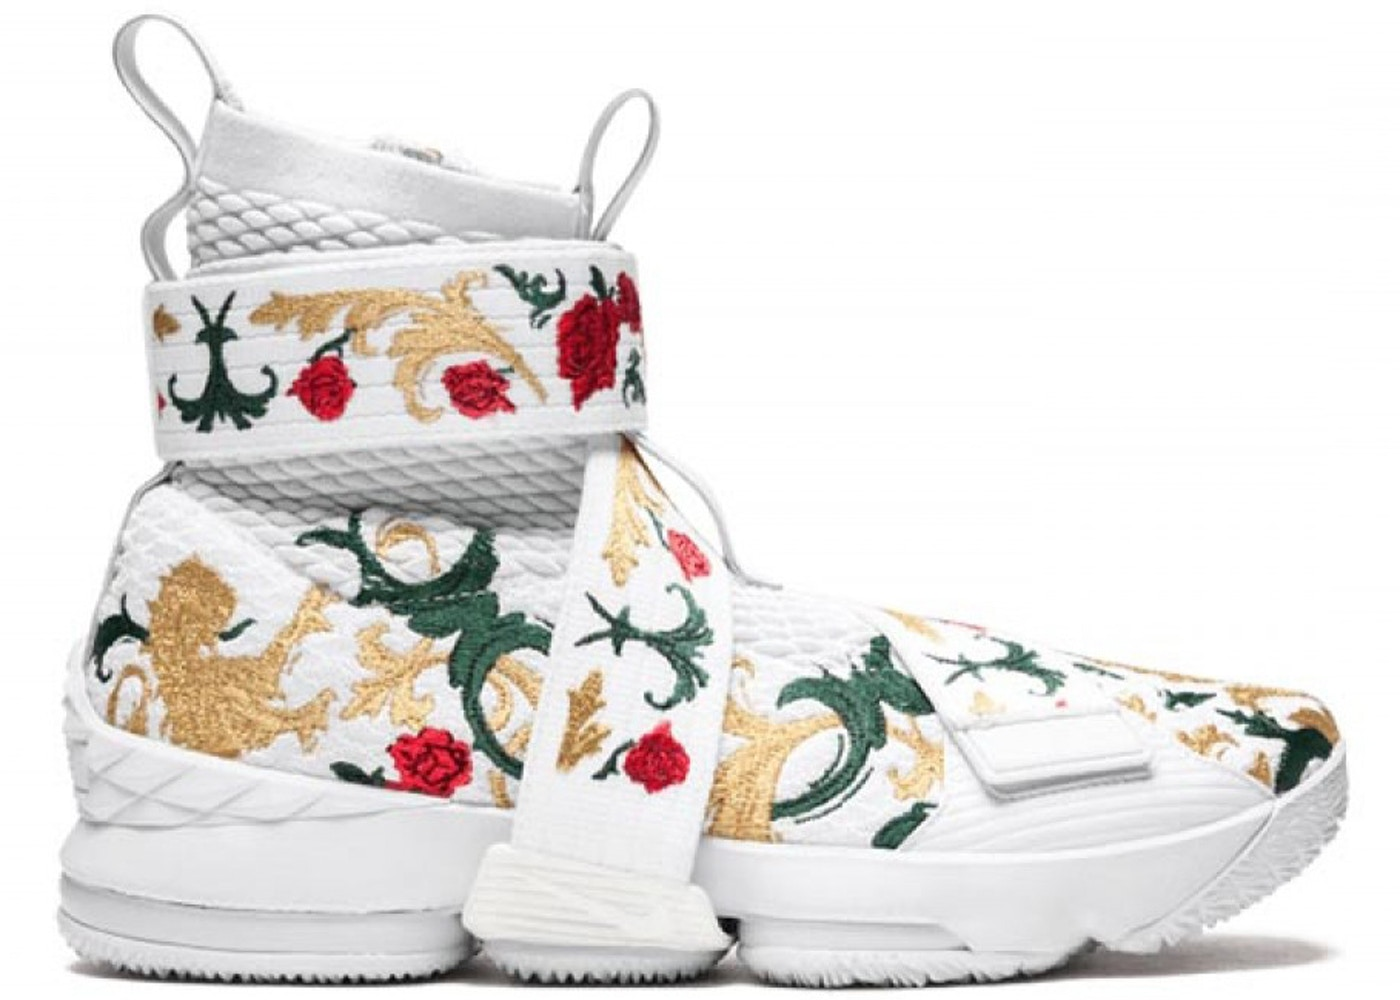 newest collection b8a4b 6b6a7 LeBron 15 Lifestyle Kith F&F White